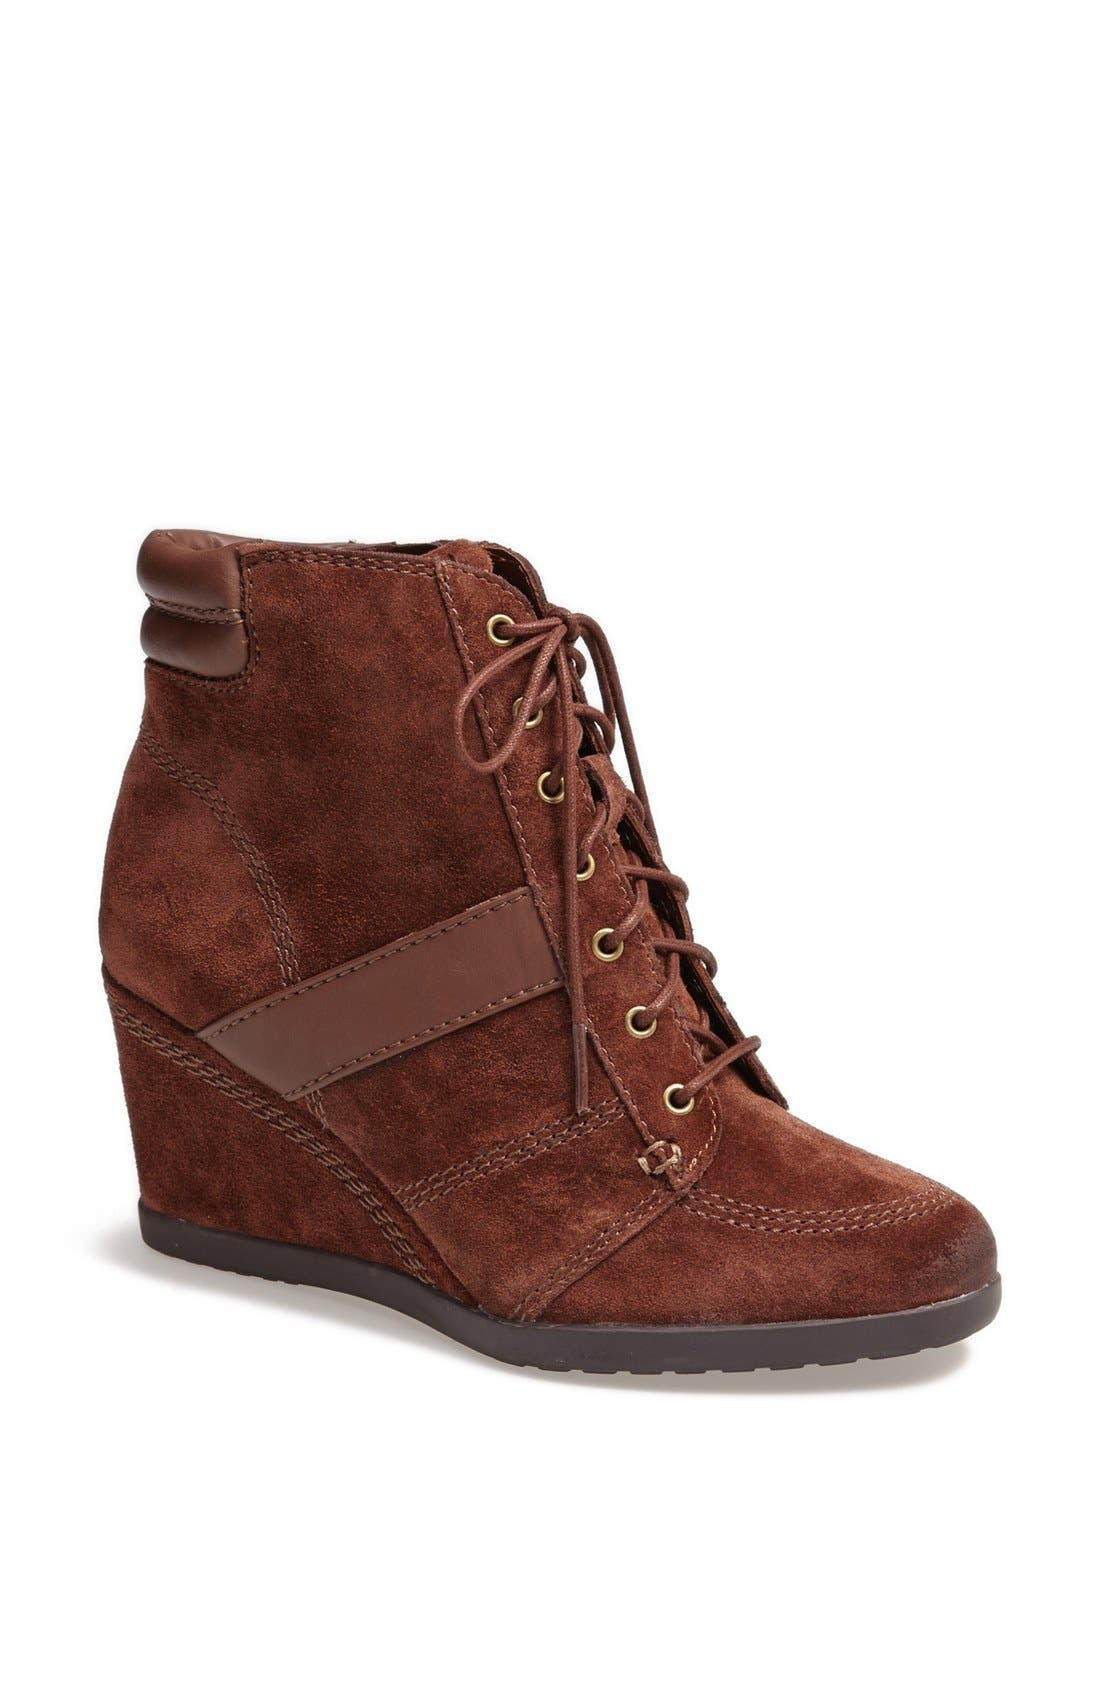 Main Image - Naturalizer 'Paitlyn' Suede Wedge Bootie